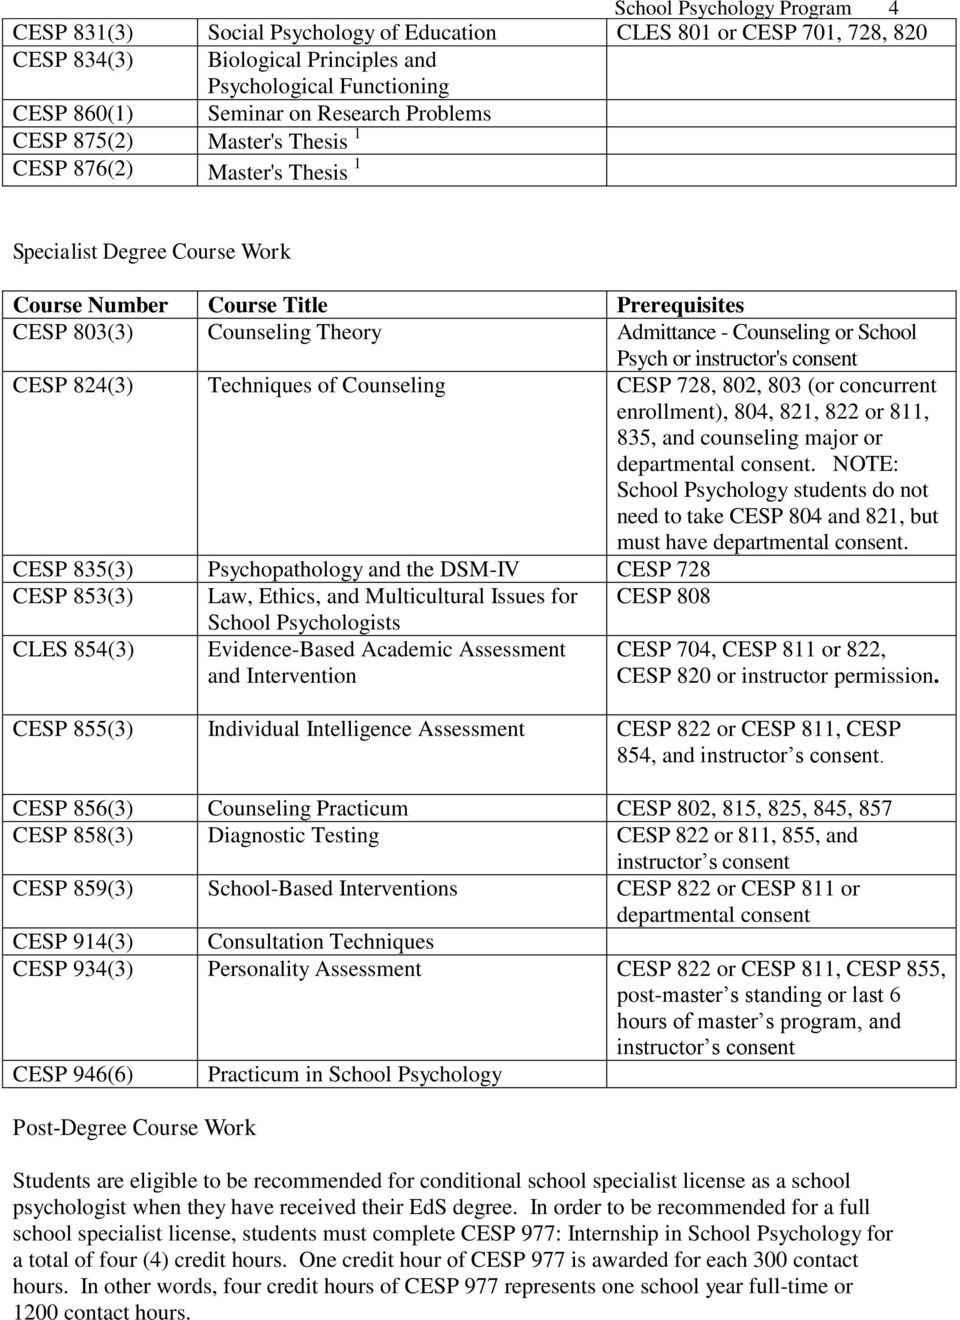 School Psych or instructor's consent CESP 824(3) Techniques of Counseling CESP 728, 802, 803 (or concurrent enrollment), 804, 821, 822 or 811, 835, and counseling major or departmental consent.